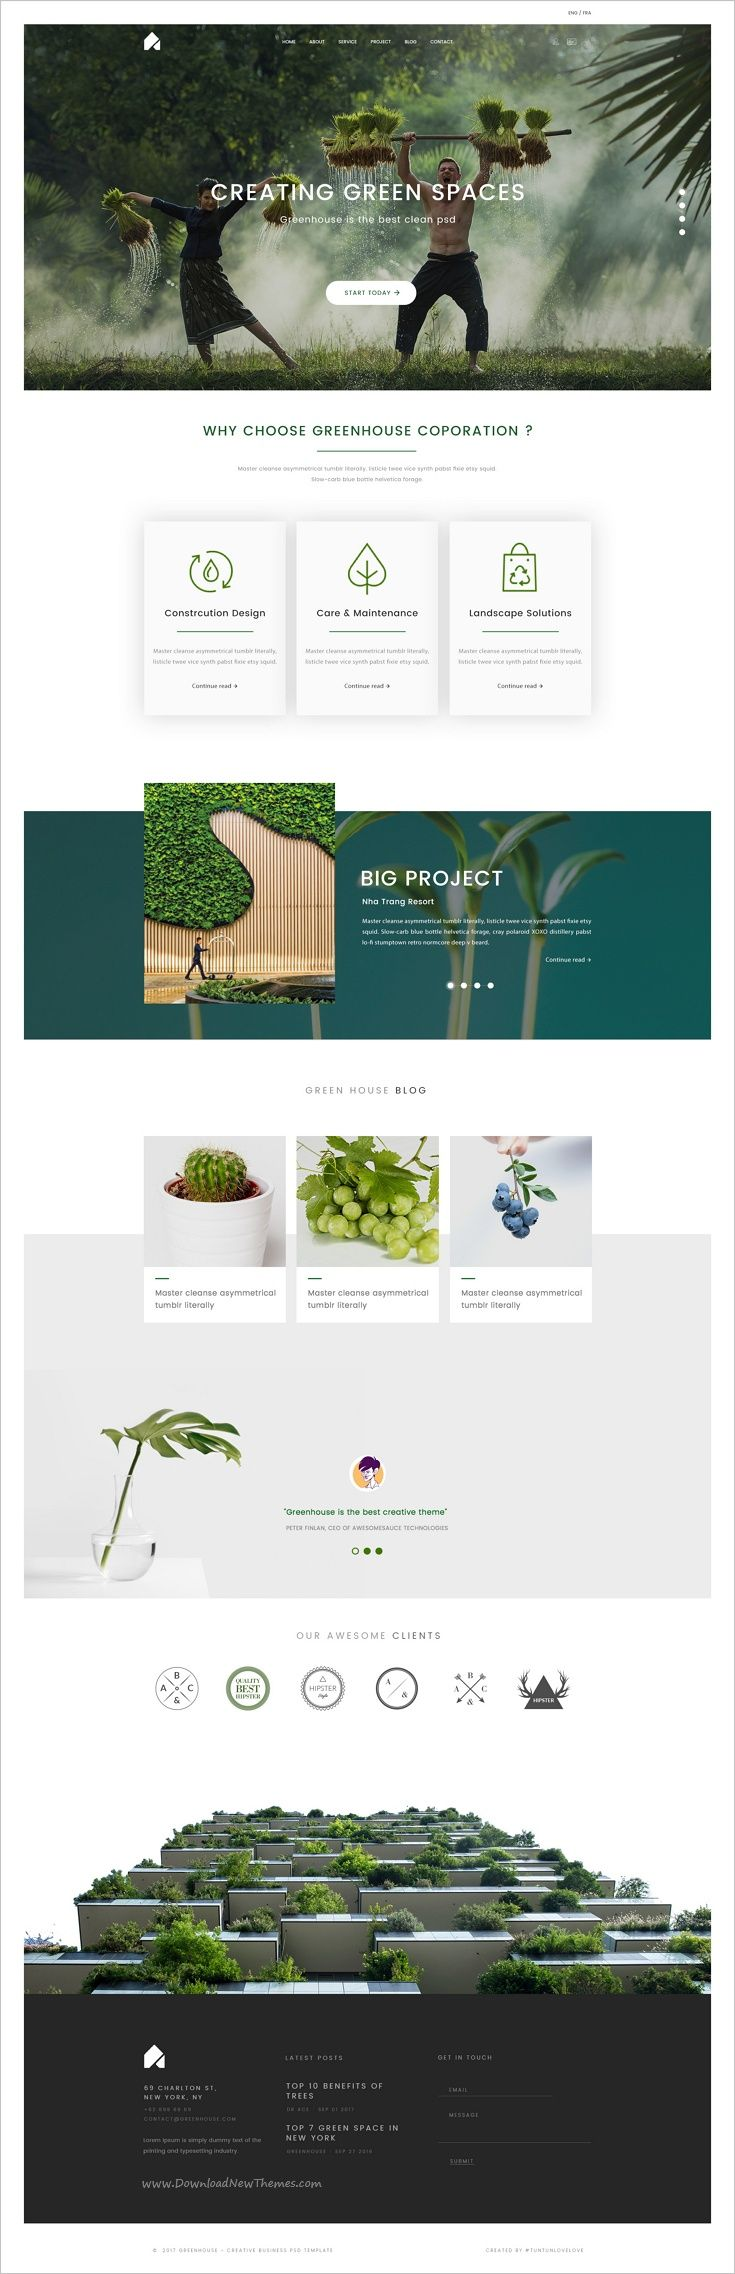 GreenHouse clean and modern design #Photoshop #template for creative #business websites with 11 organized PSD pages download now➩ https://themeforest.net/item/greenhouse-creative-business-psd-template/19254568?ref=Datasata